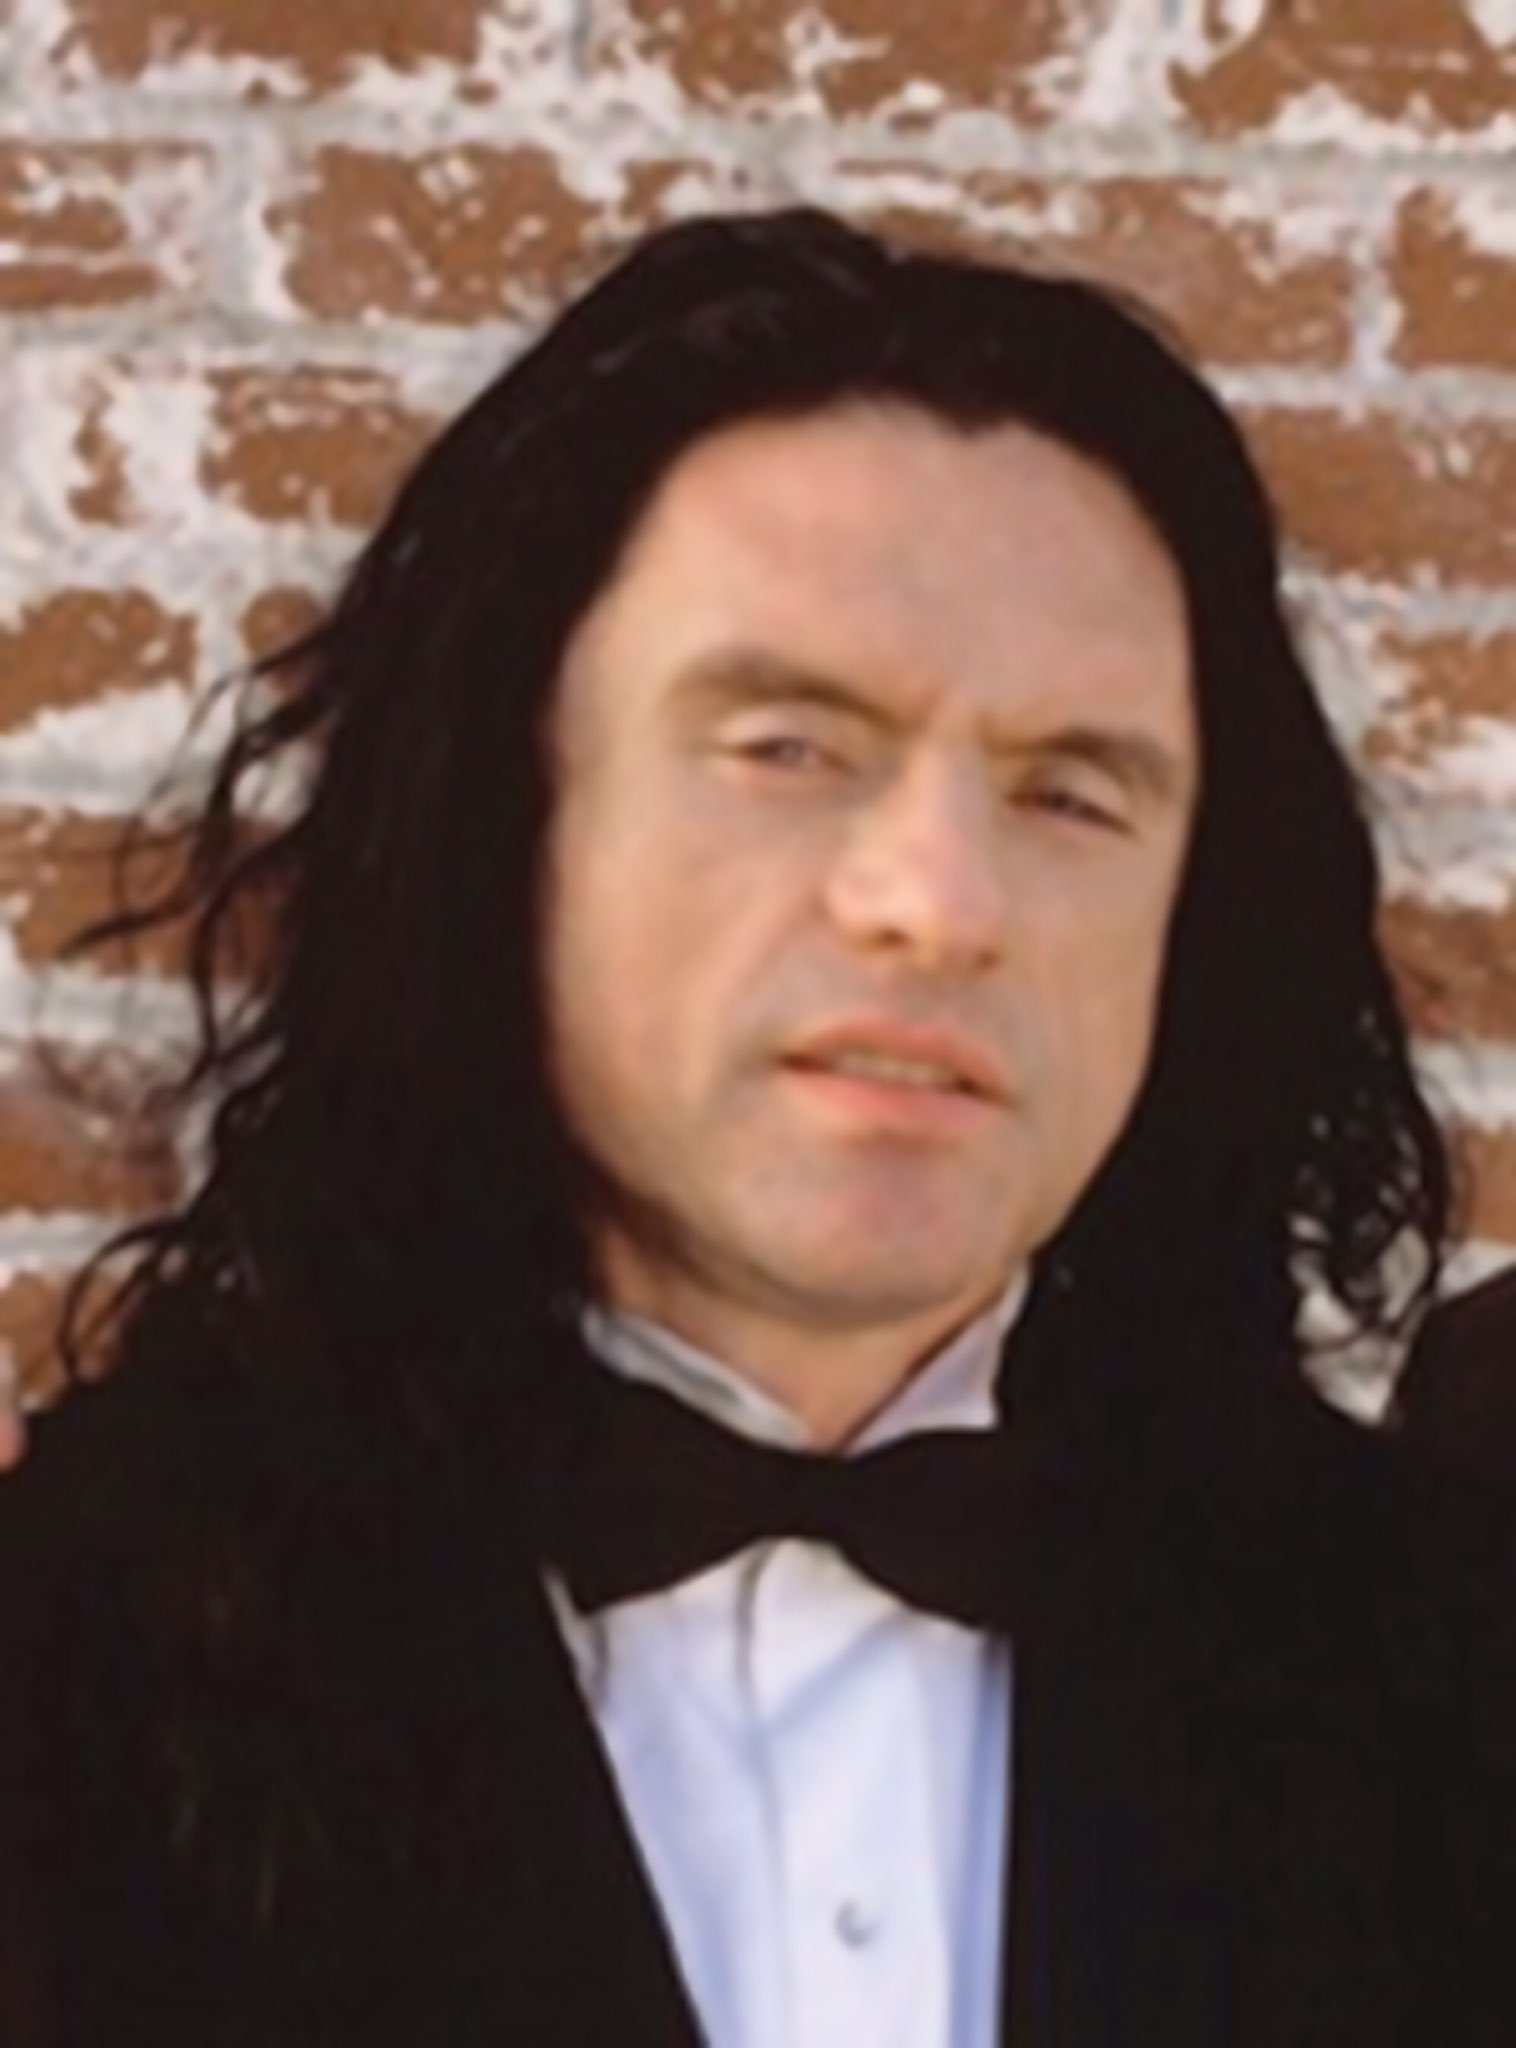 Happy Birthday Tommy Wiseau!